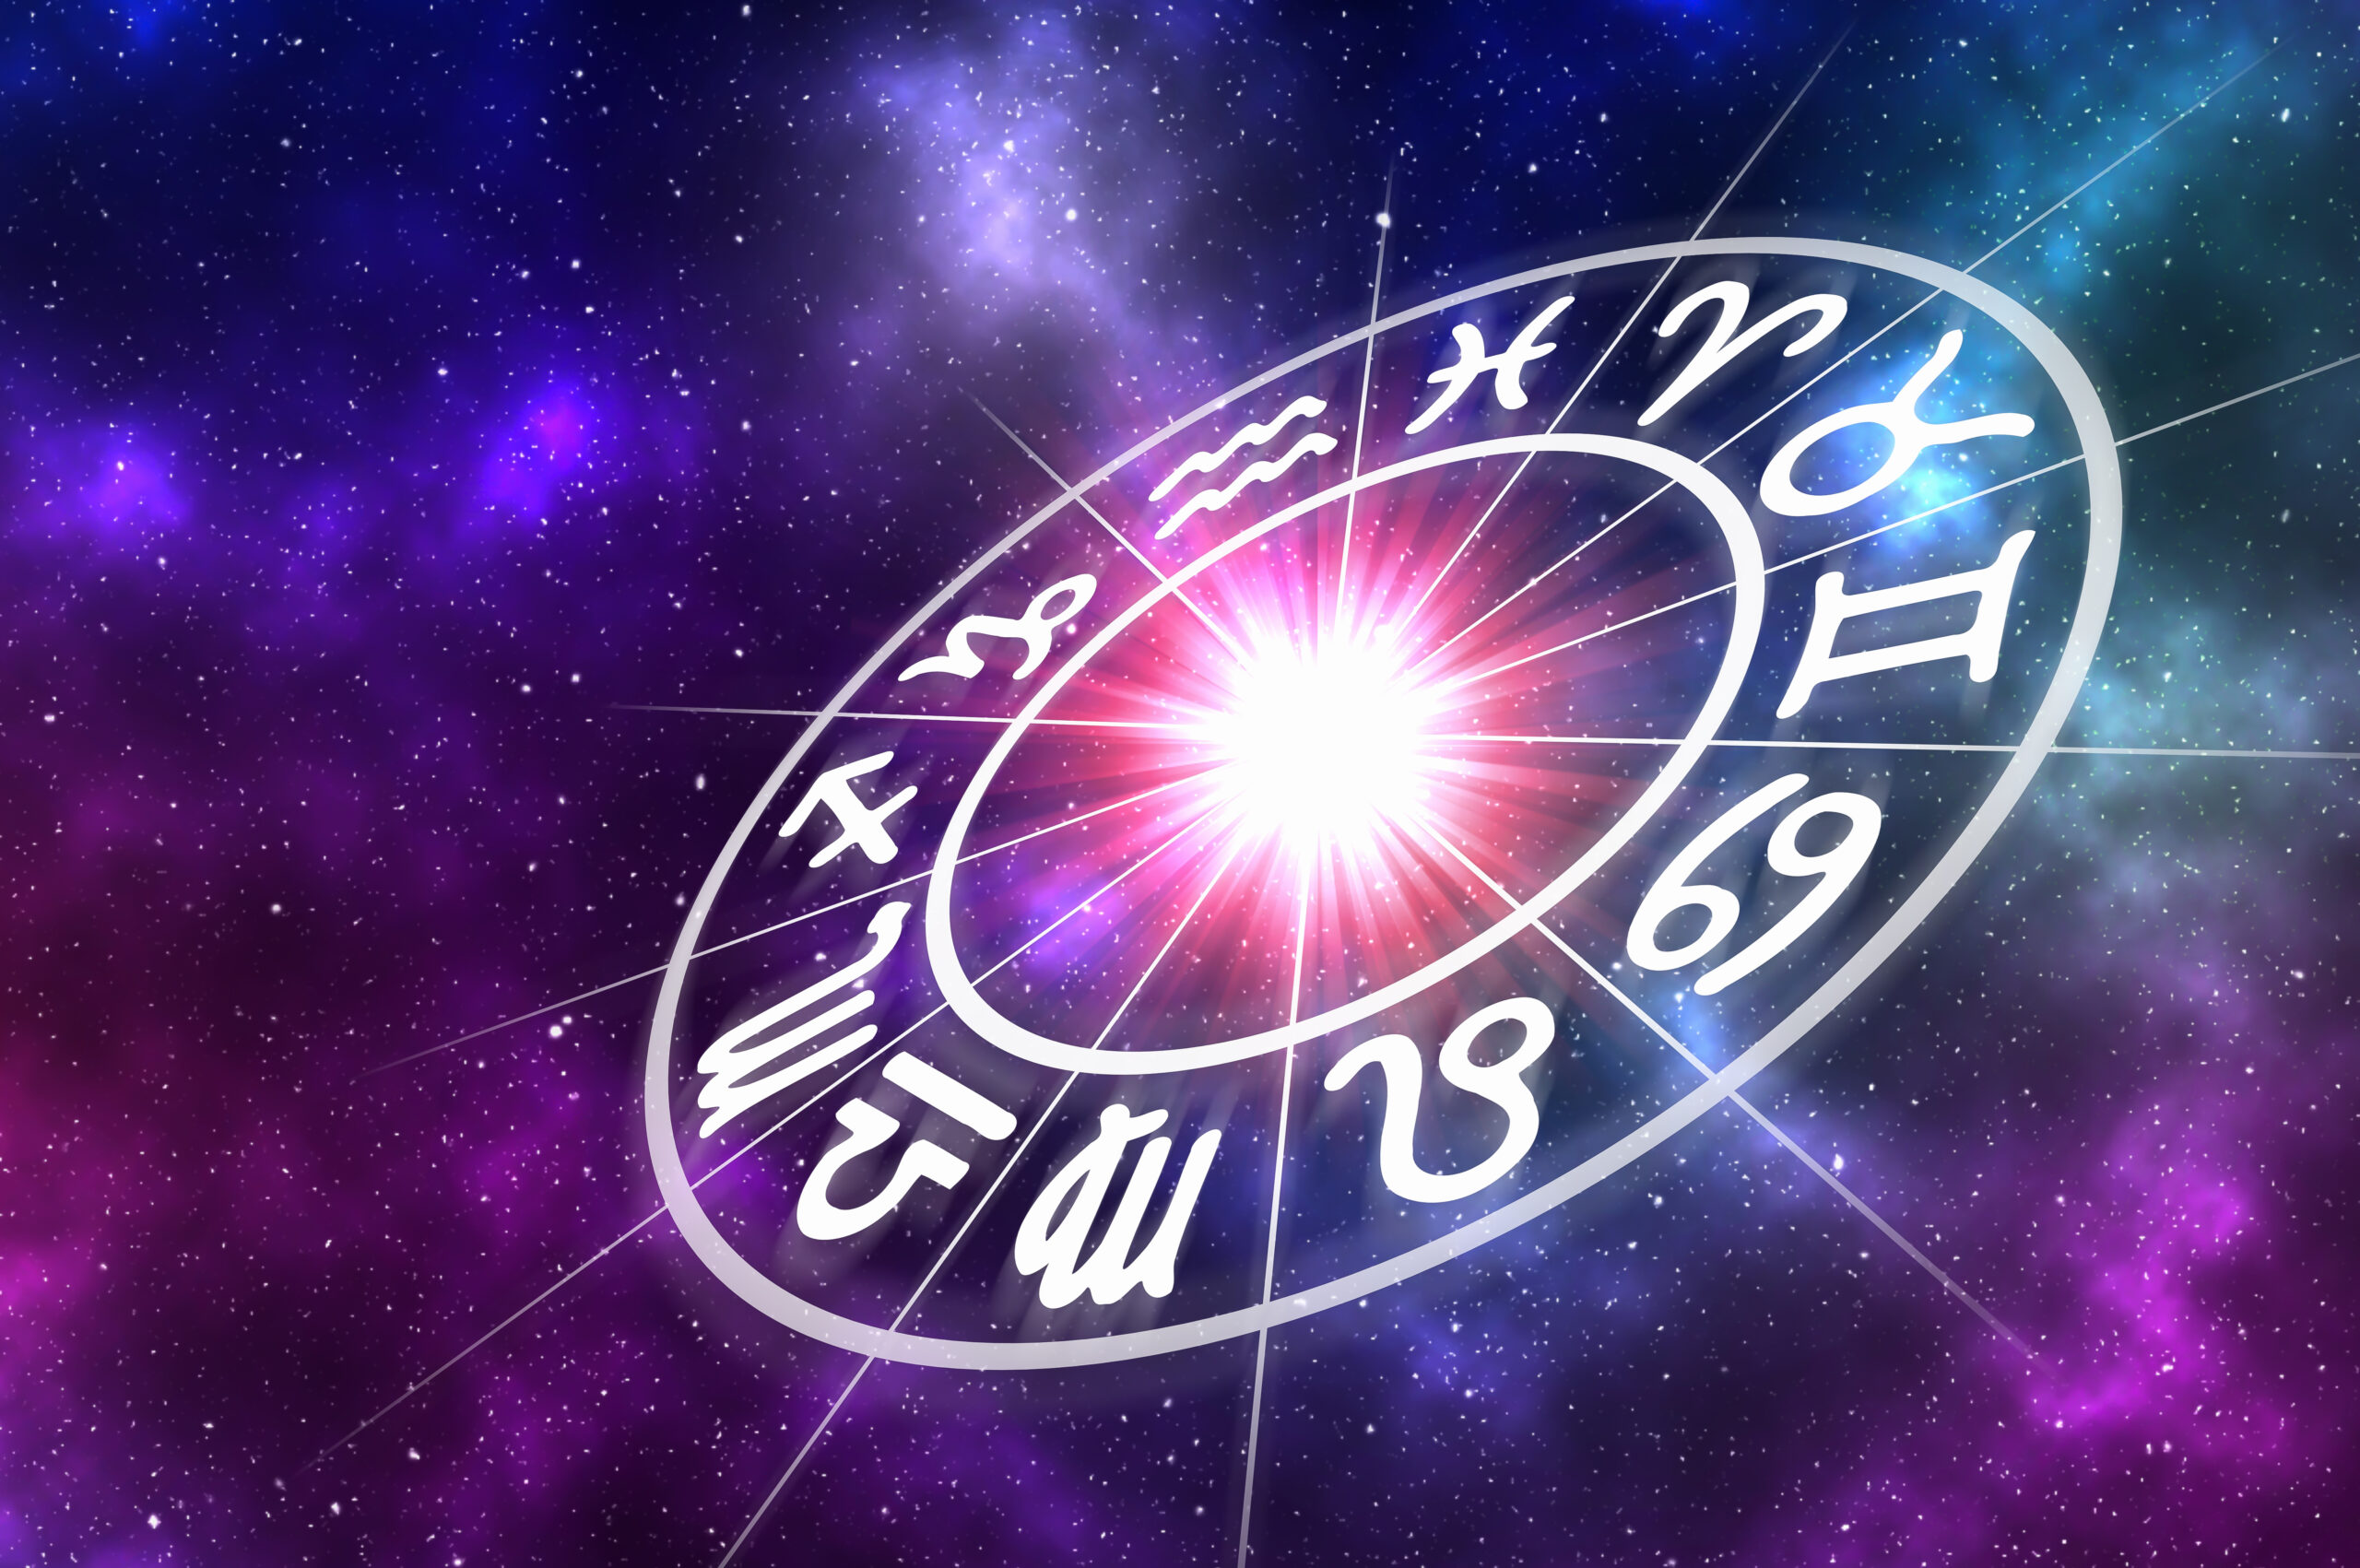 Does the day that you were born decide not only your personality but also what kind of life you will lead? Find out in today's article on the Arabic horoscope and decide for yourself.